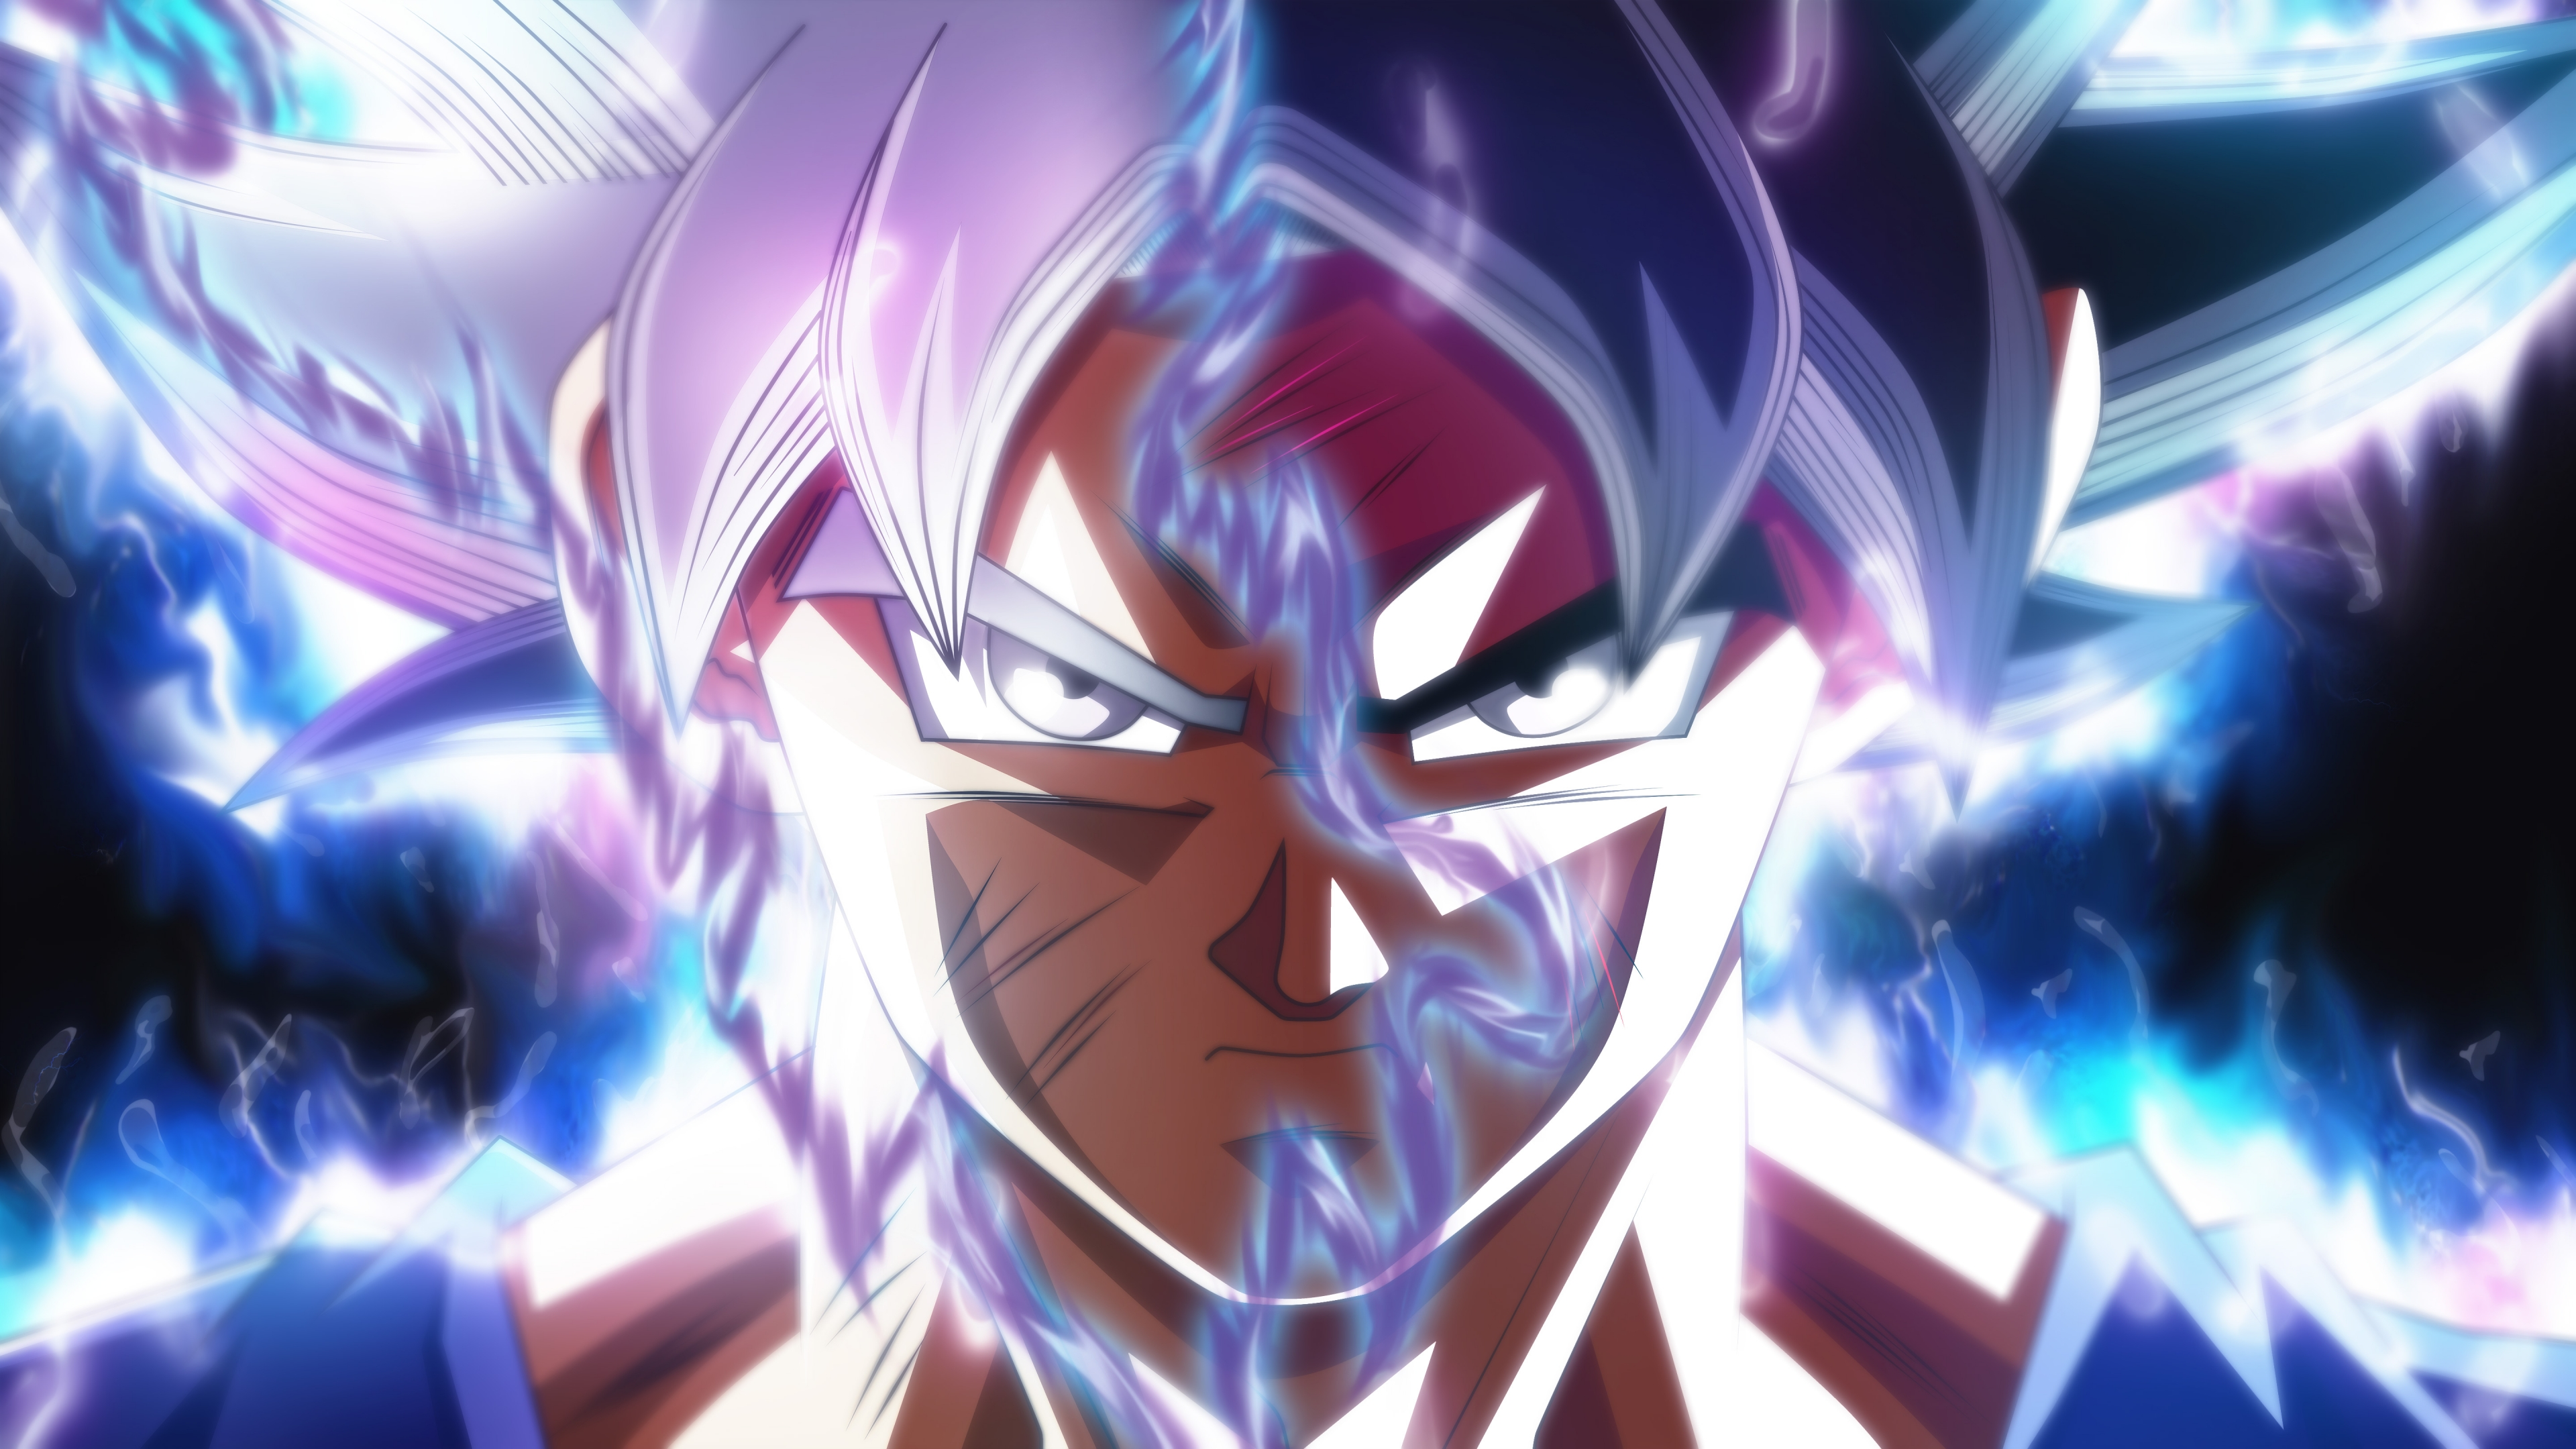 Goku Ultra Instinct Transformación Dragon Ball Super Anime Fondo De Pantalla Id 3439